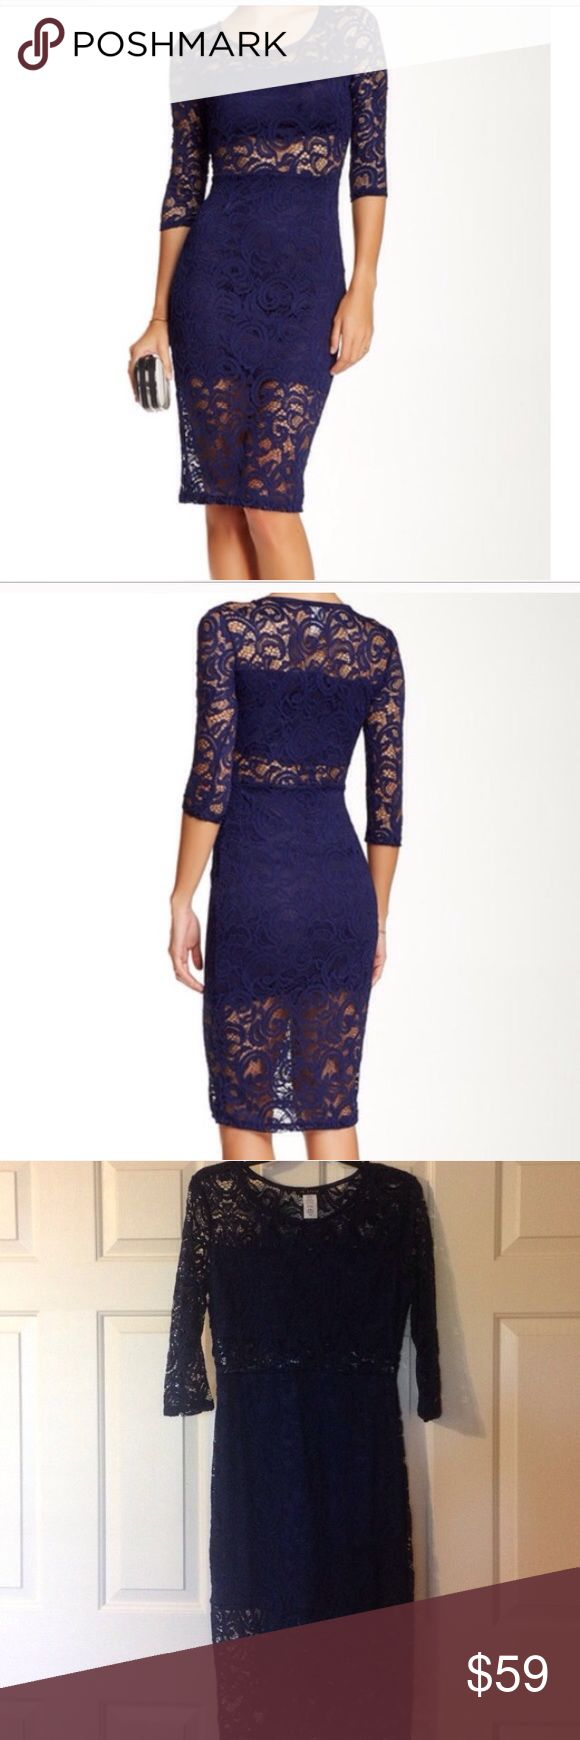 Nwot Blvd Nordstroms  Bodycon lace dress No flaws new without tags Blvd Dresses Midi